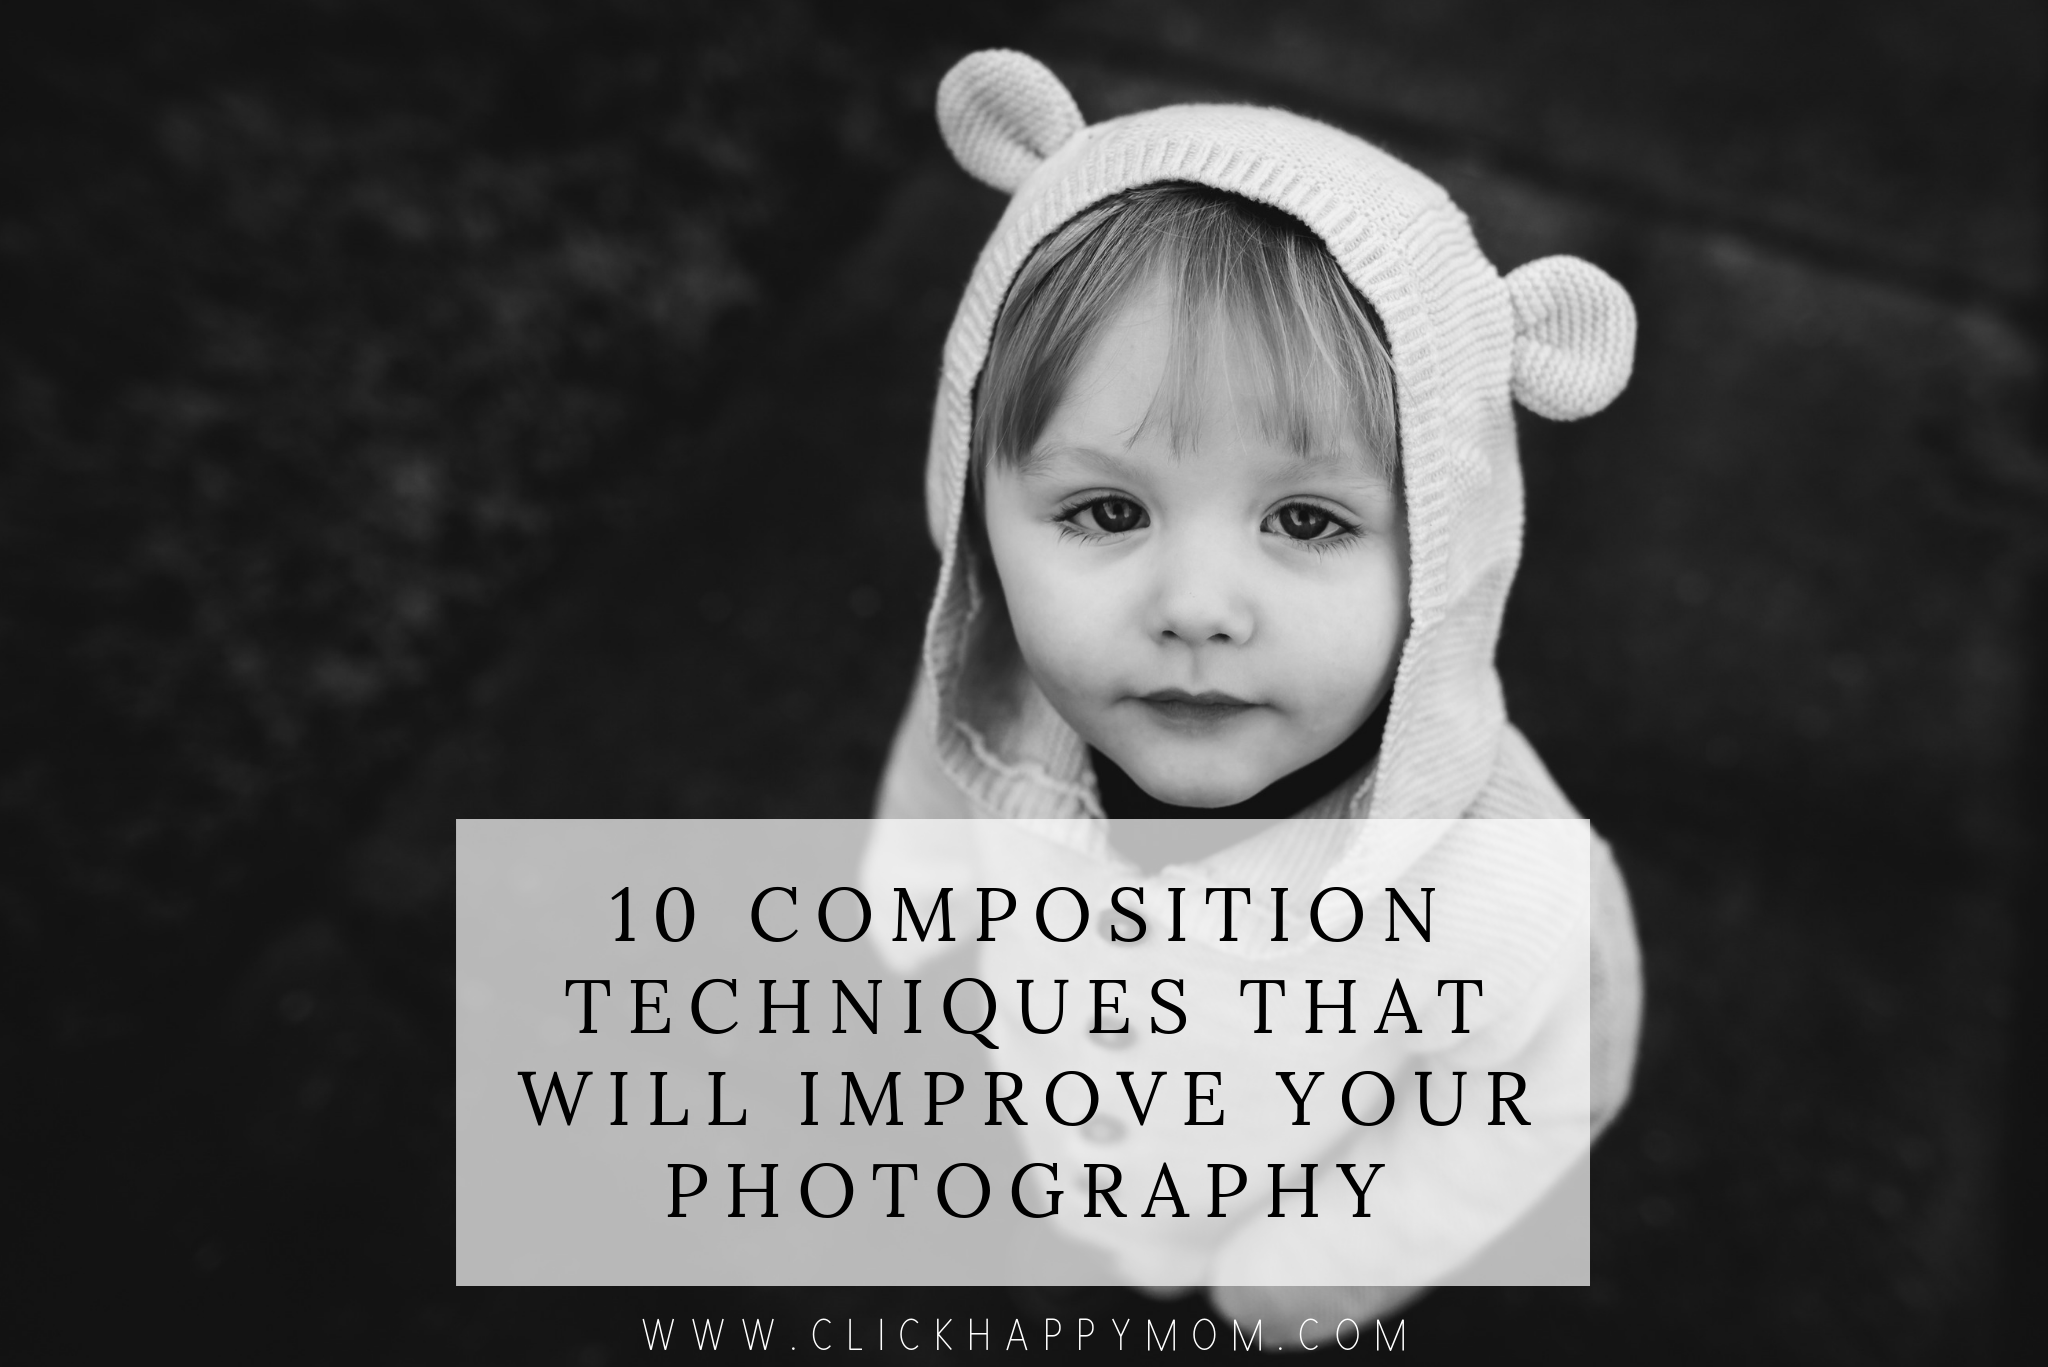 10 Composition Techniques That Will Improve Your Photography